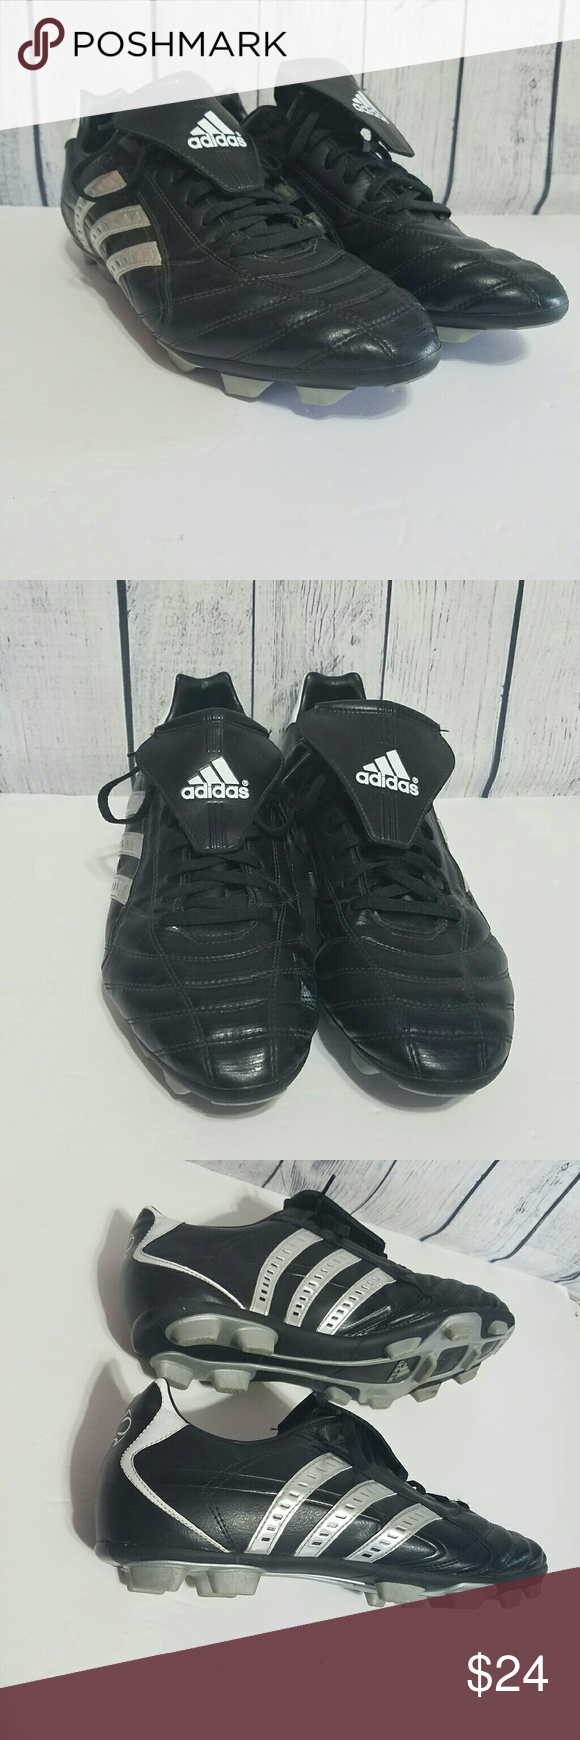 Adidas Traxion Firm Ground Soccer